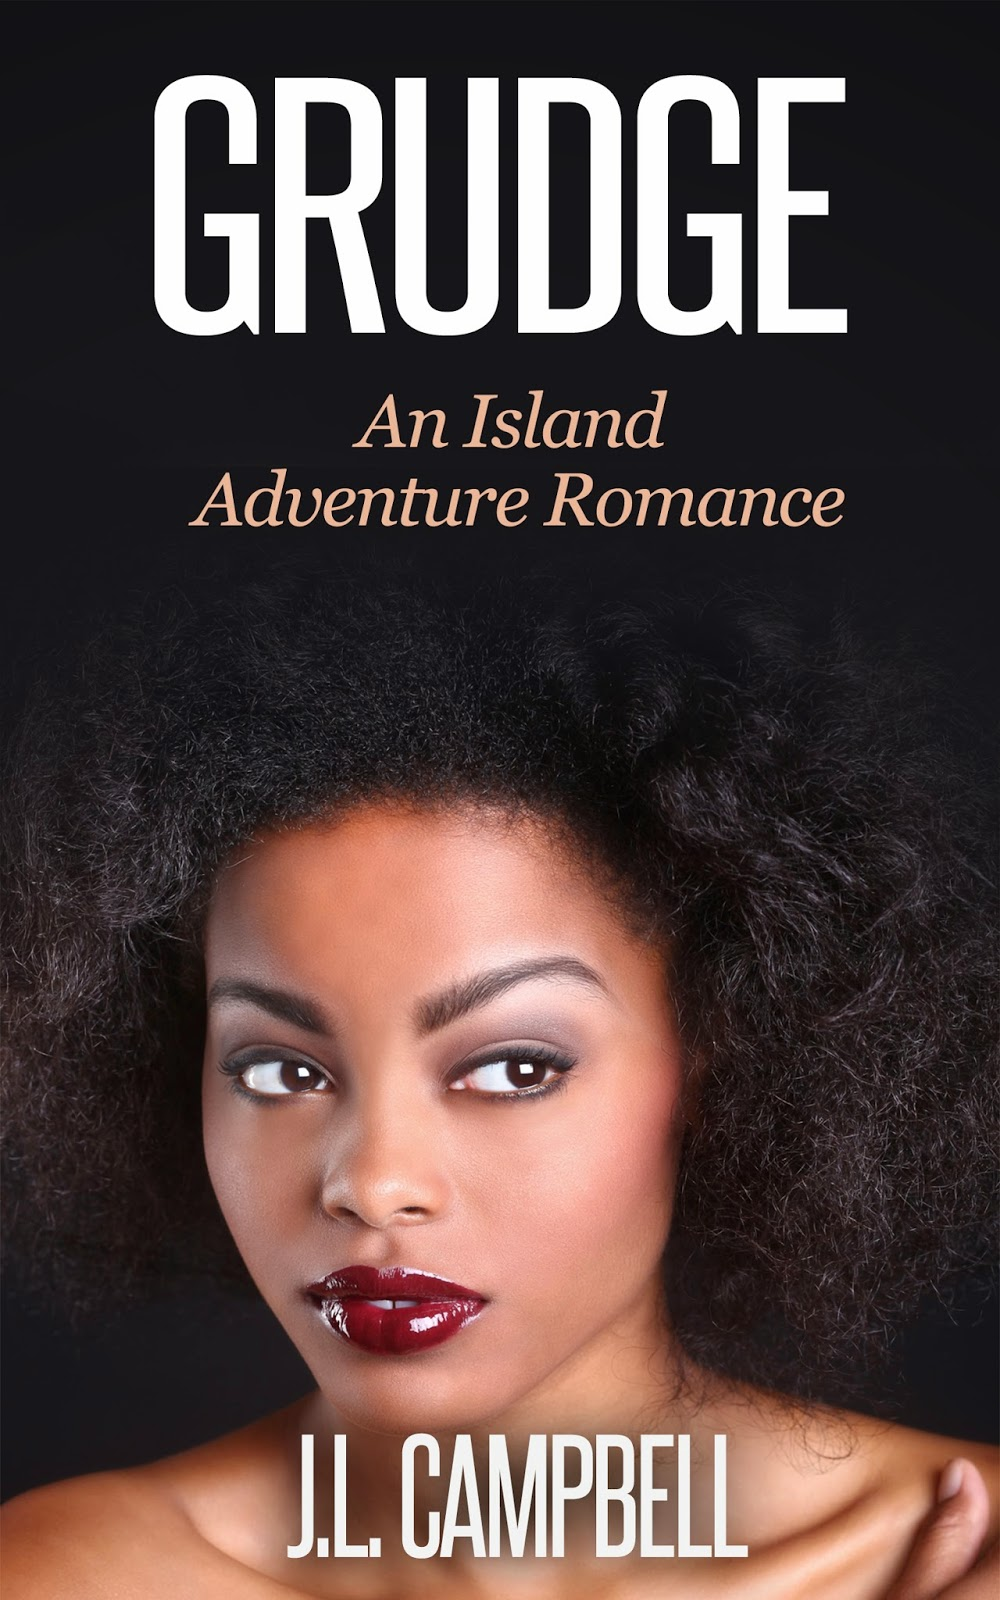 http://www.amazon.com/Grudge-Island-Adventure-Book-5-ebook/dp/B00R9RH8FW/ref=sr_1_1?s=books&ie=UTF8&qid=1419198241&sr=1-1&keywords=Grudge+by+J.l.+Campbell